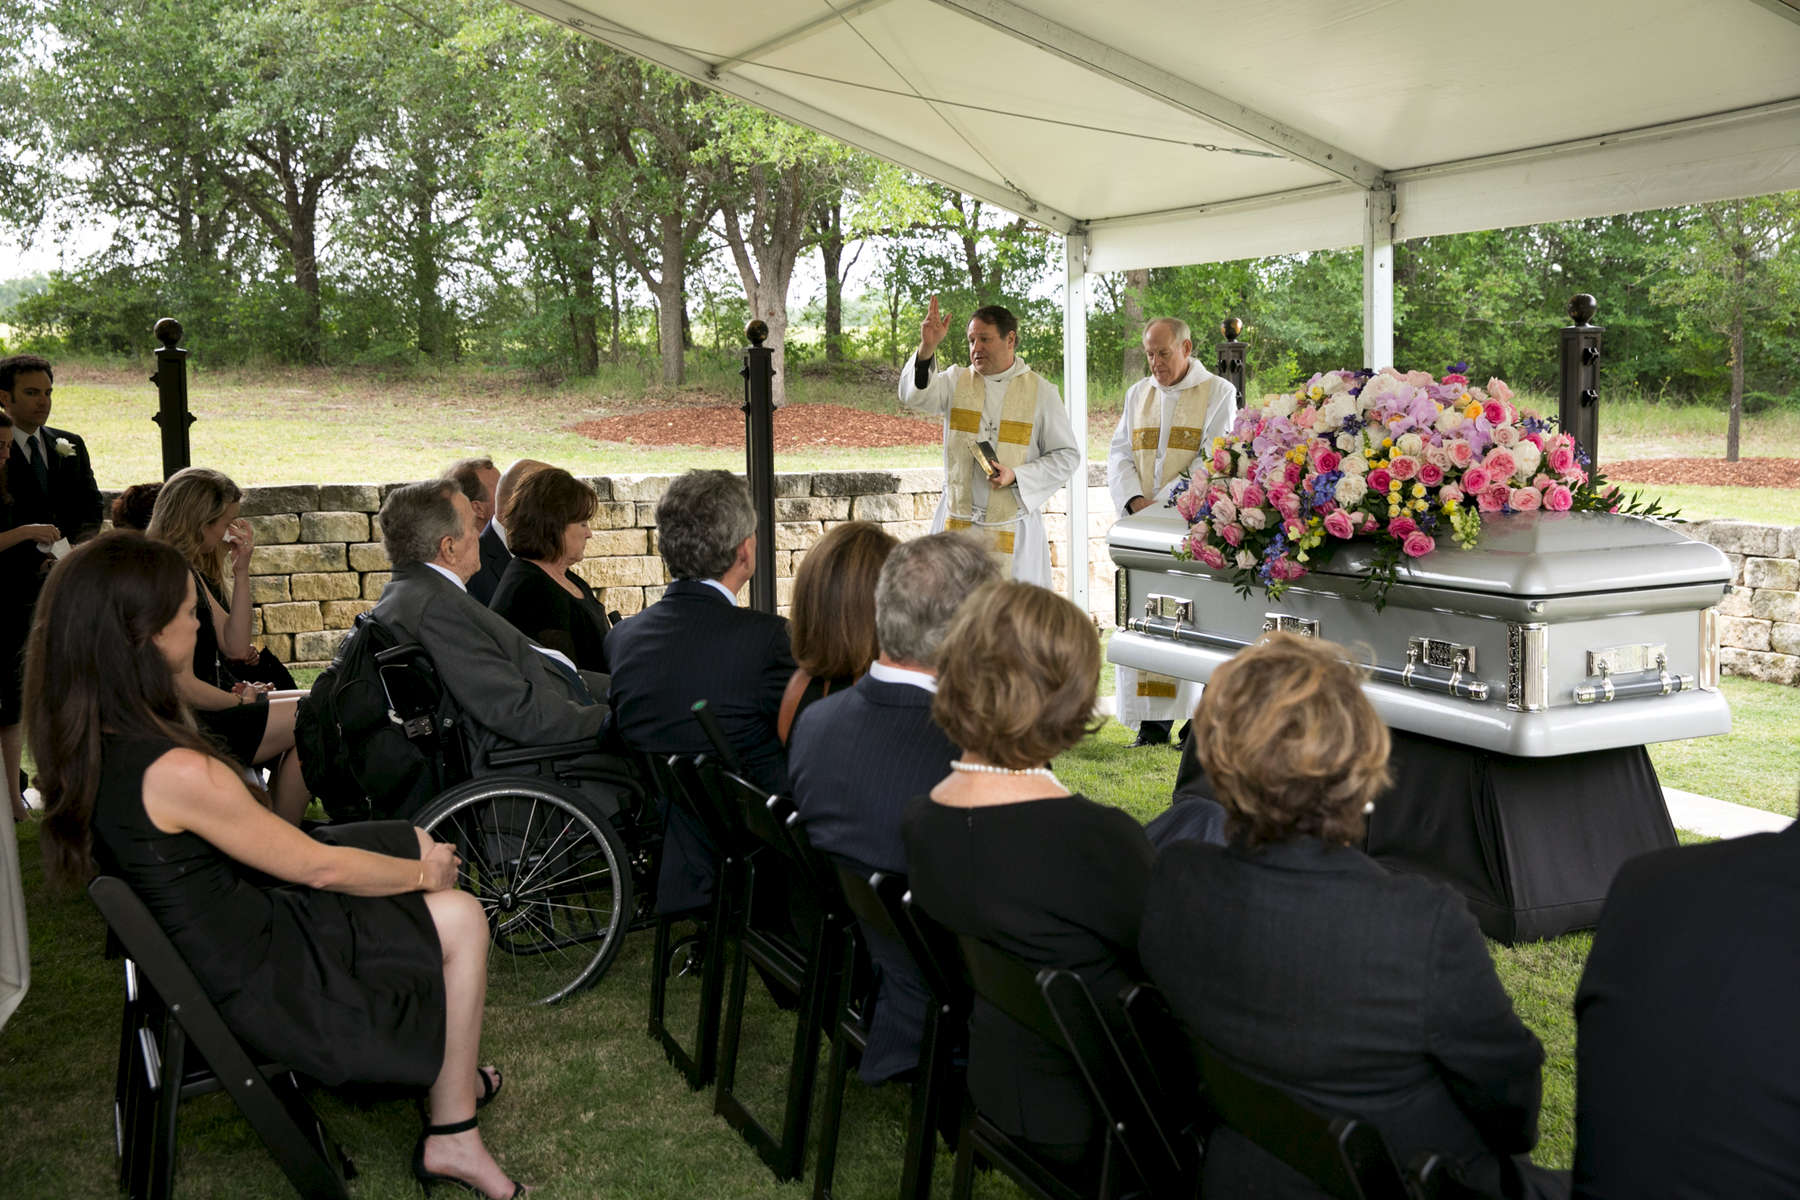 The funeral of former First Lady Barbara Bush on April 21, 2018. Photo by Paul Morse